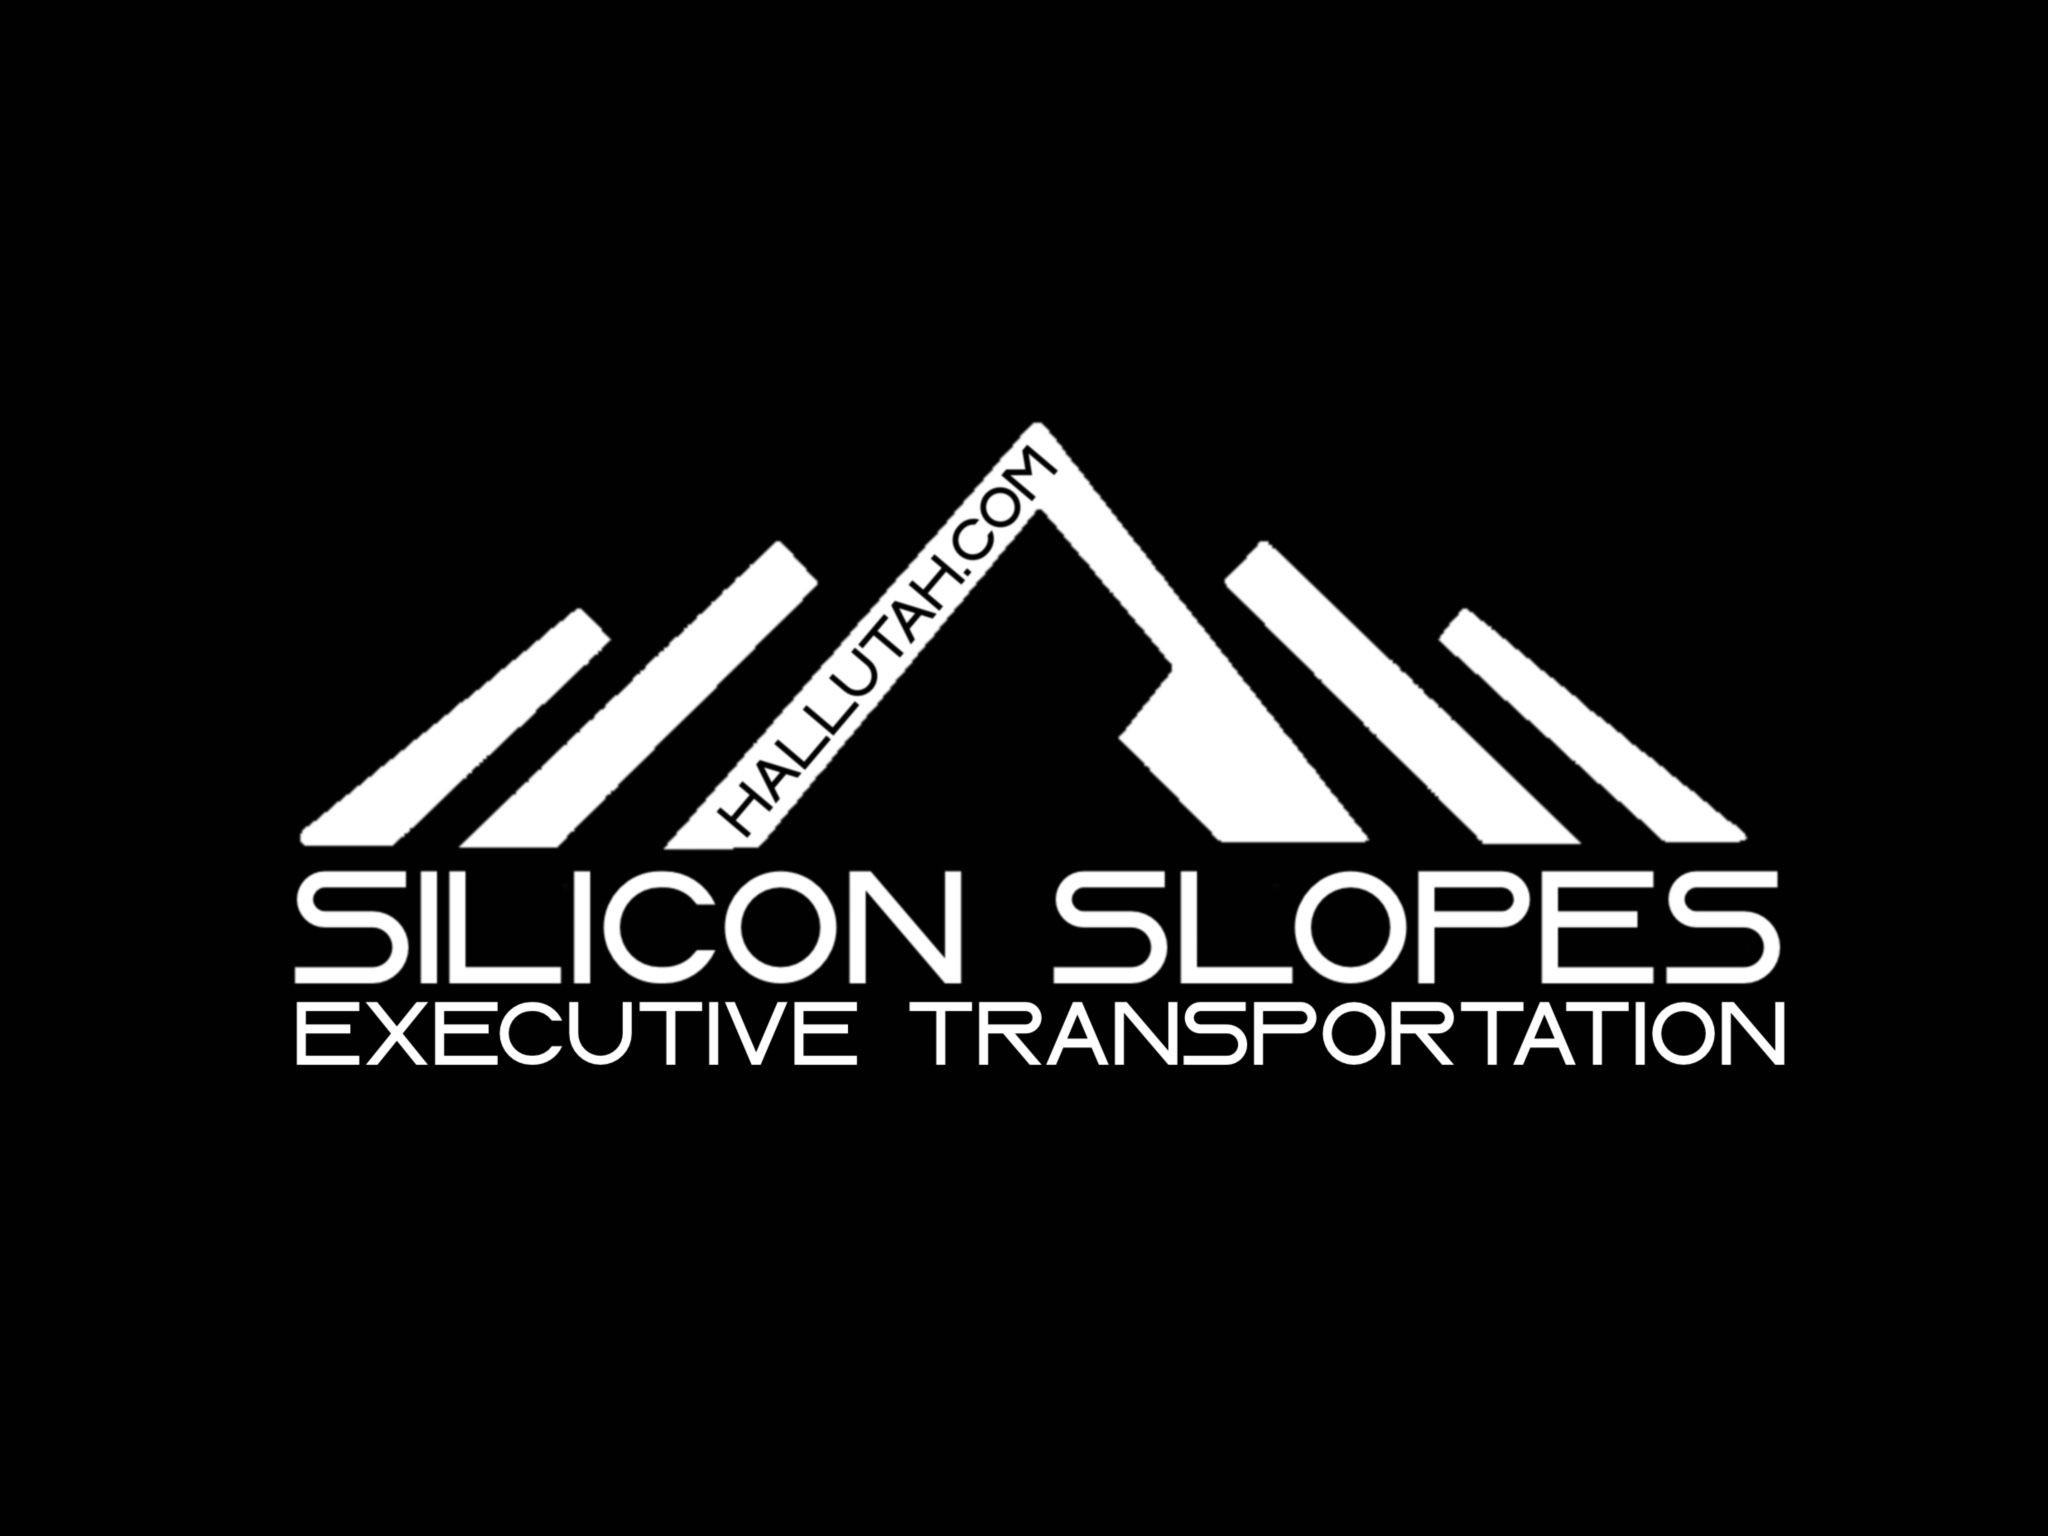 Silicon Slopes Executive Transportation